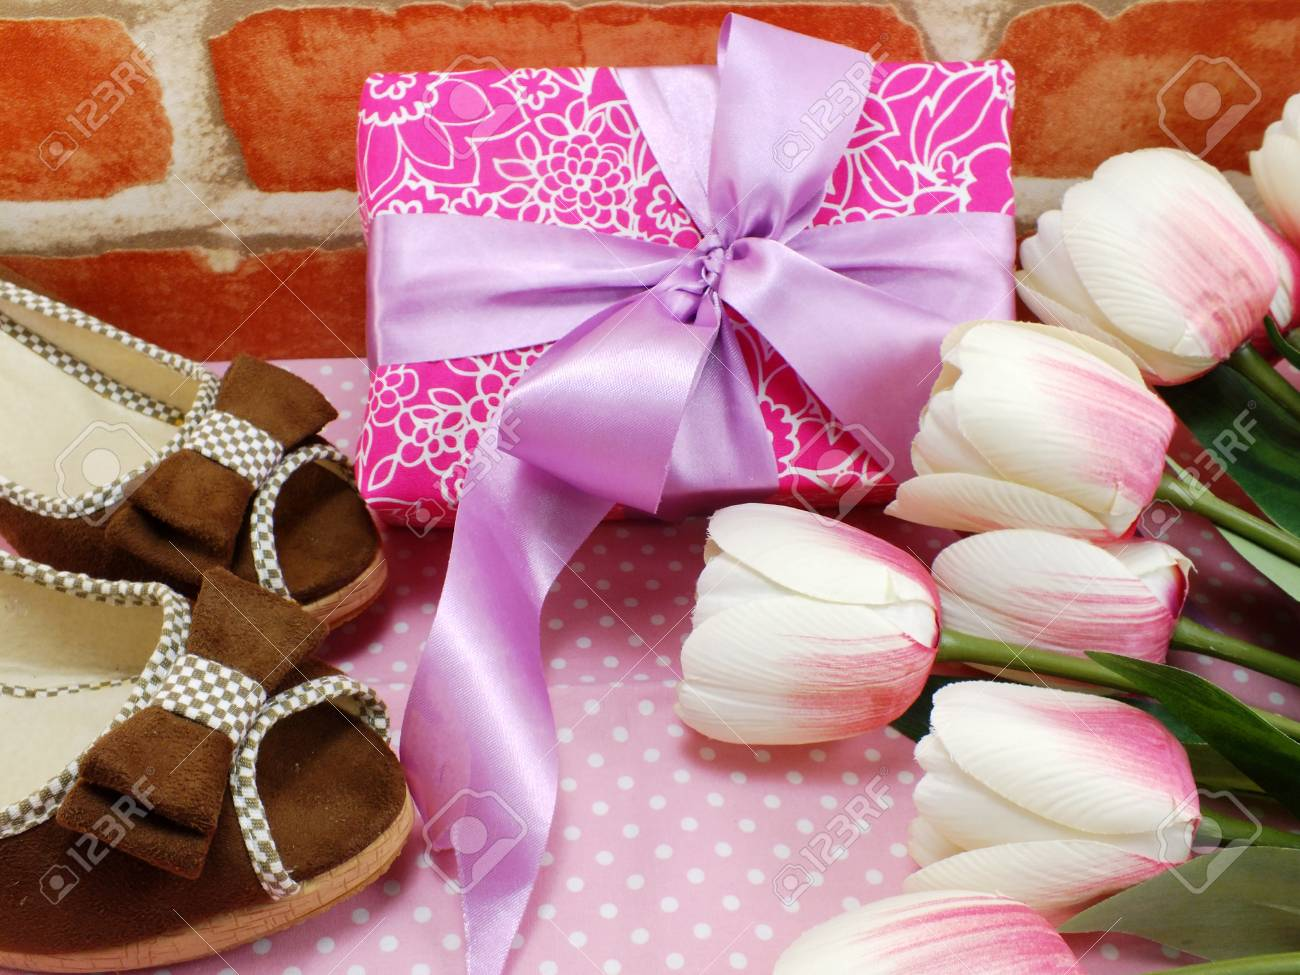 pink gift box and ladies shoes on pink polka dot background